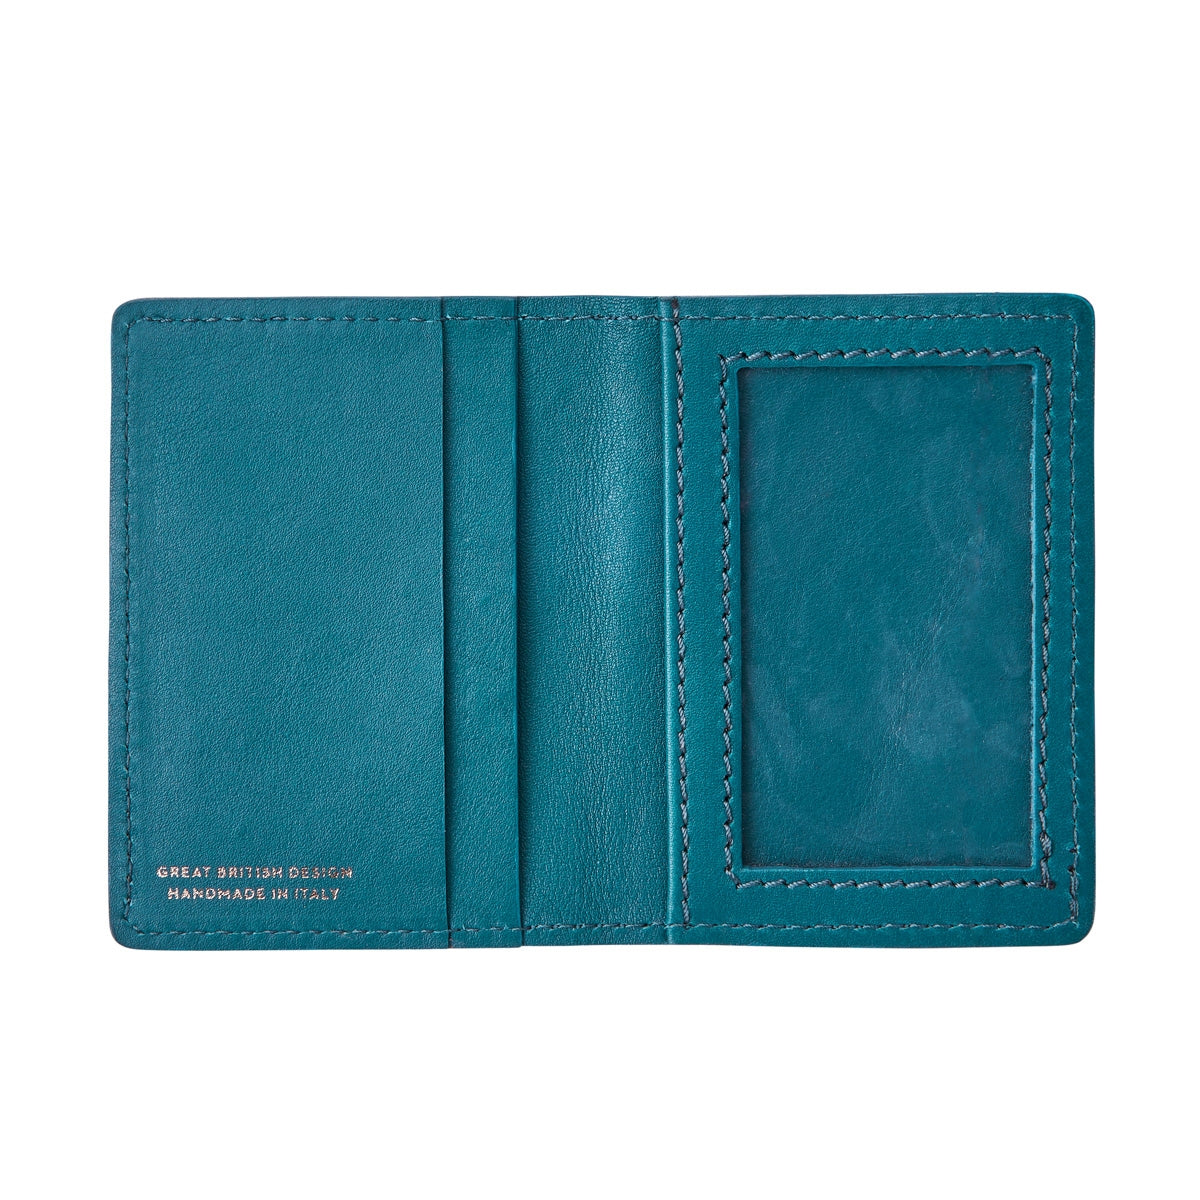 Image 4 of the 'Vallata' Petrol Leather Oyster Card Holder